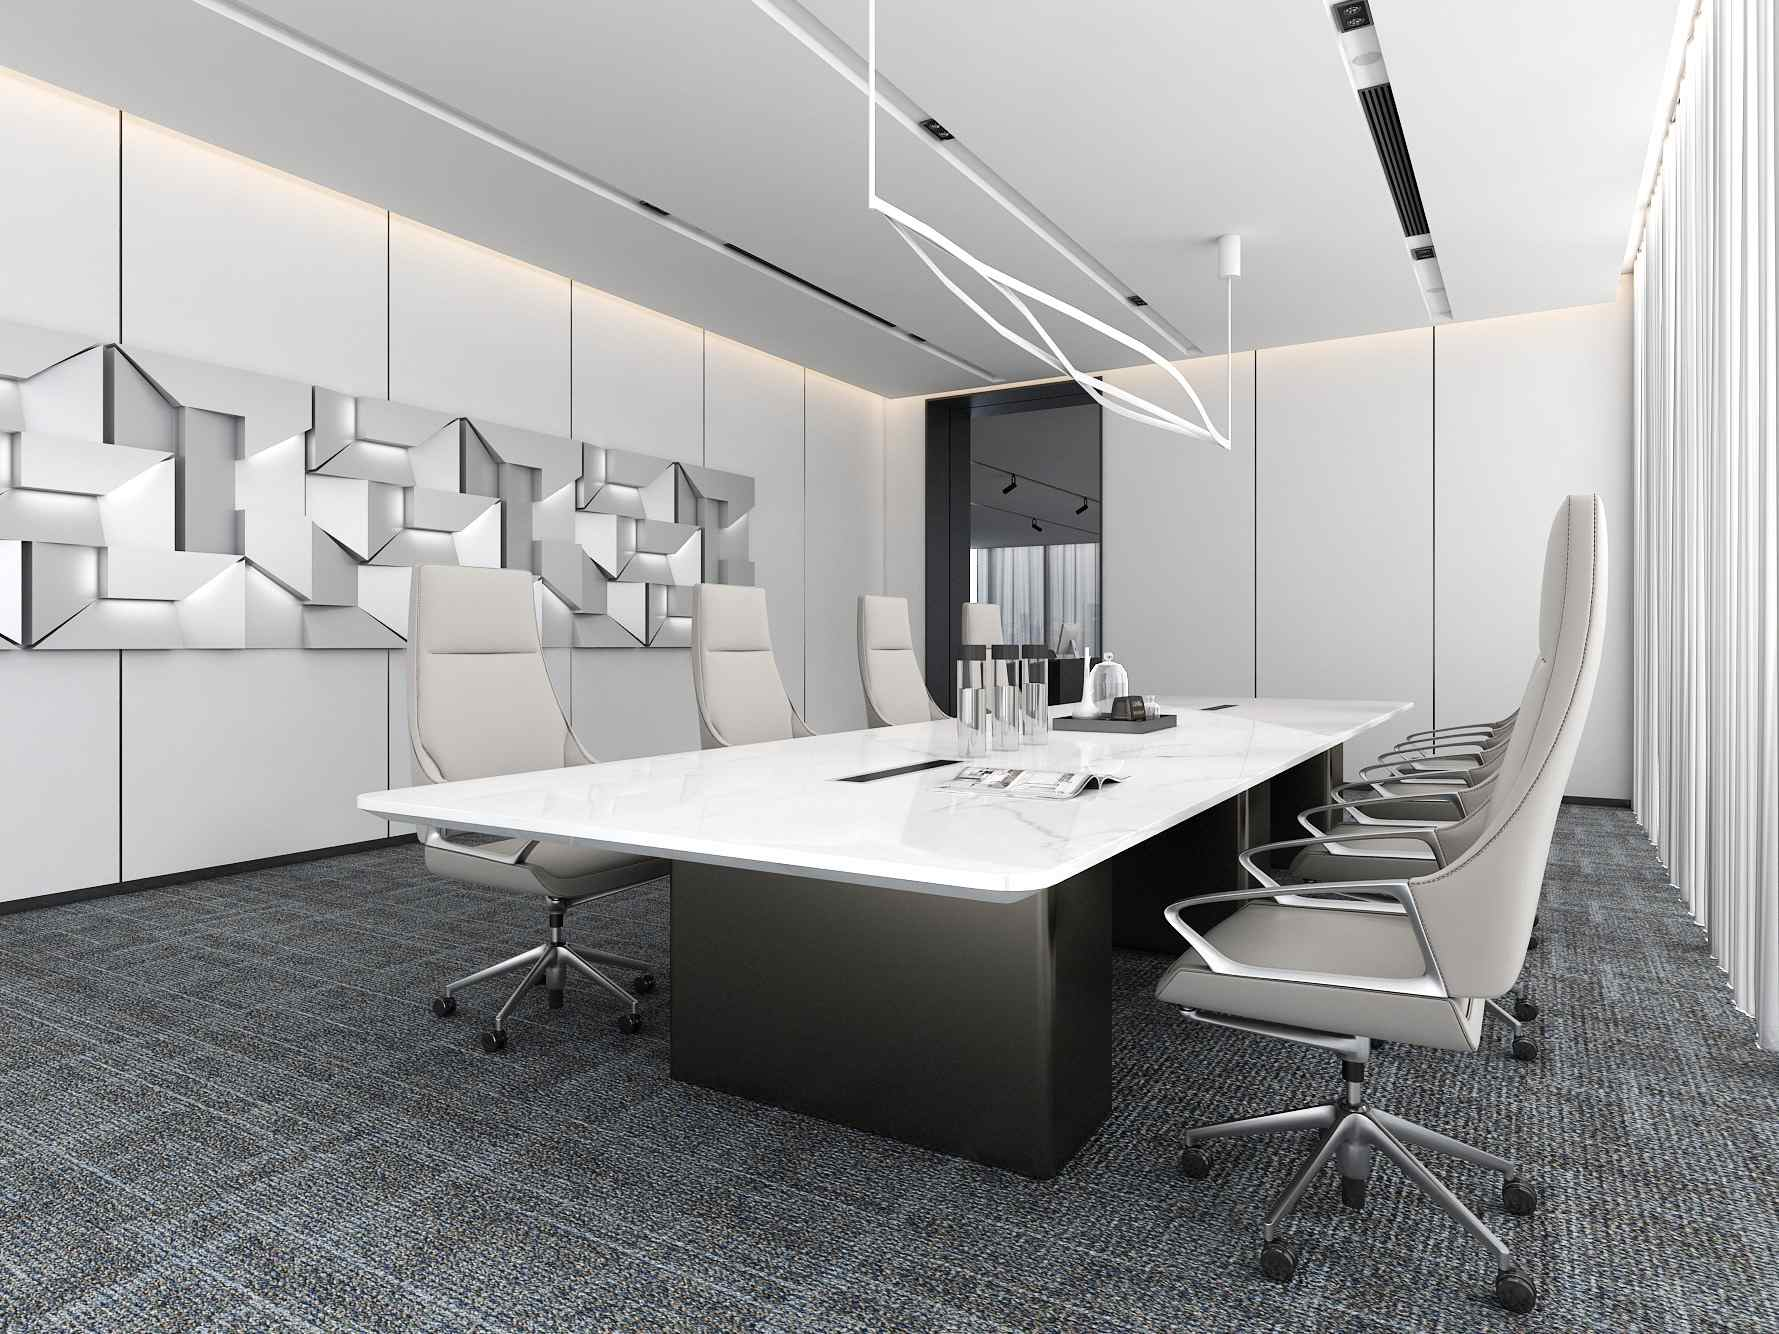 Three-legged Conference Table